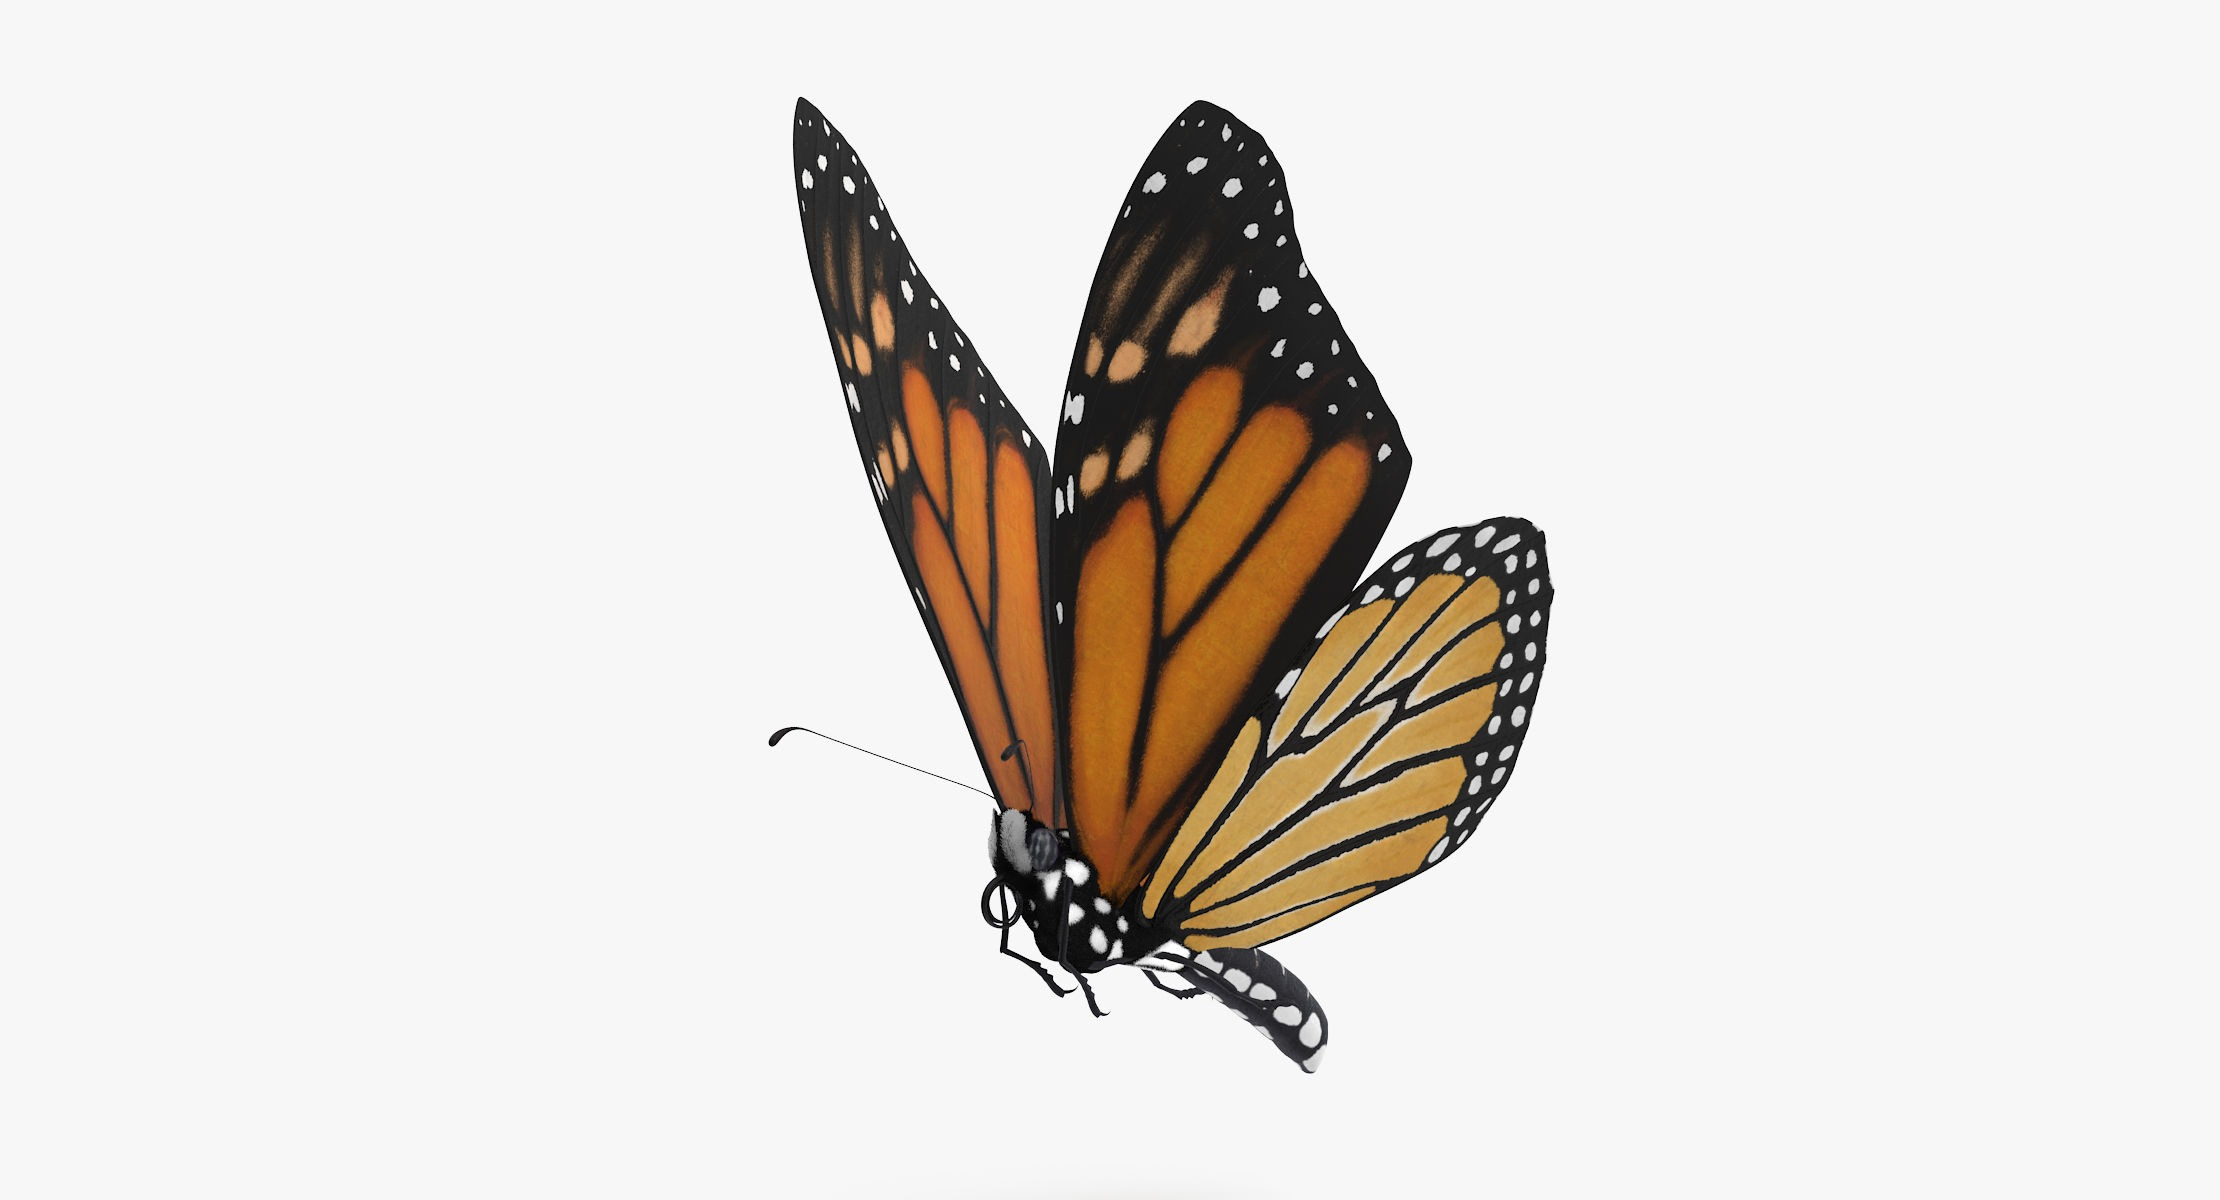 images of butterflies flying - photo #26